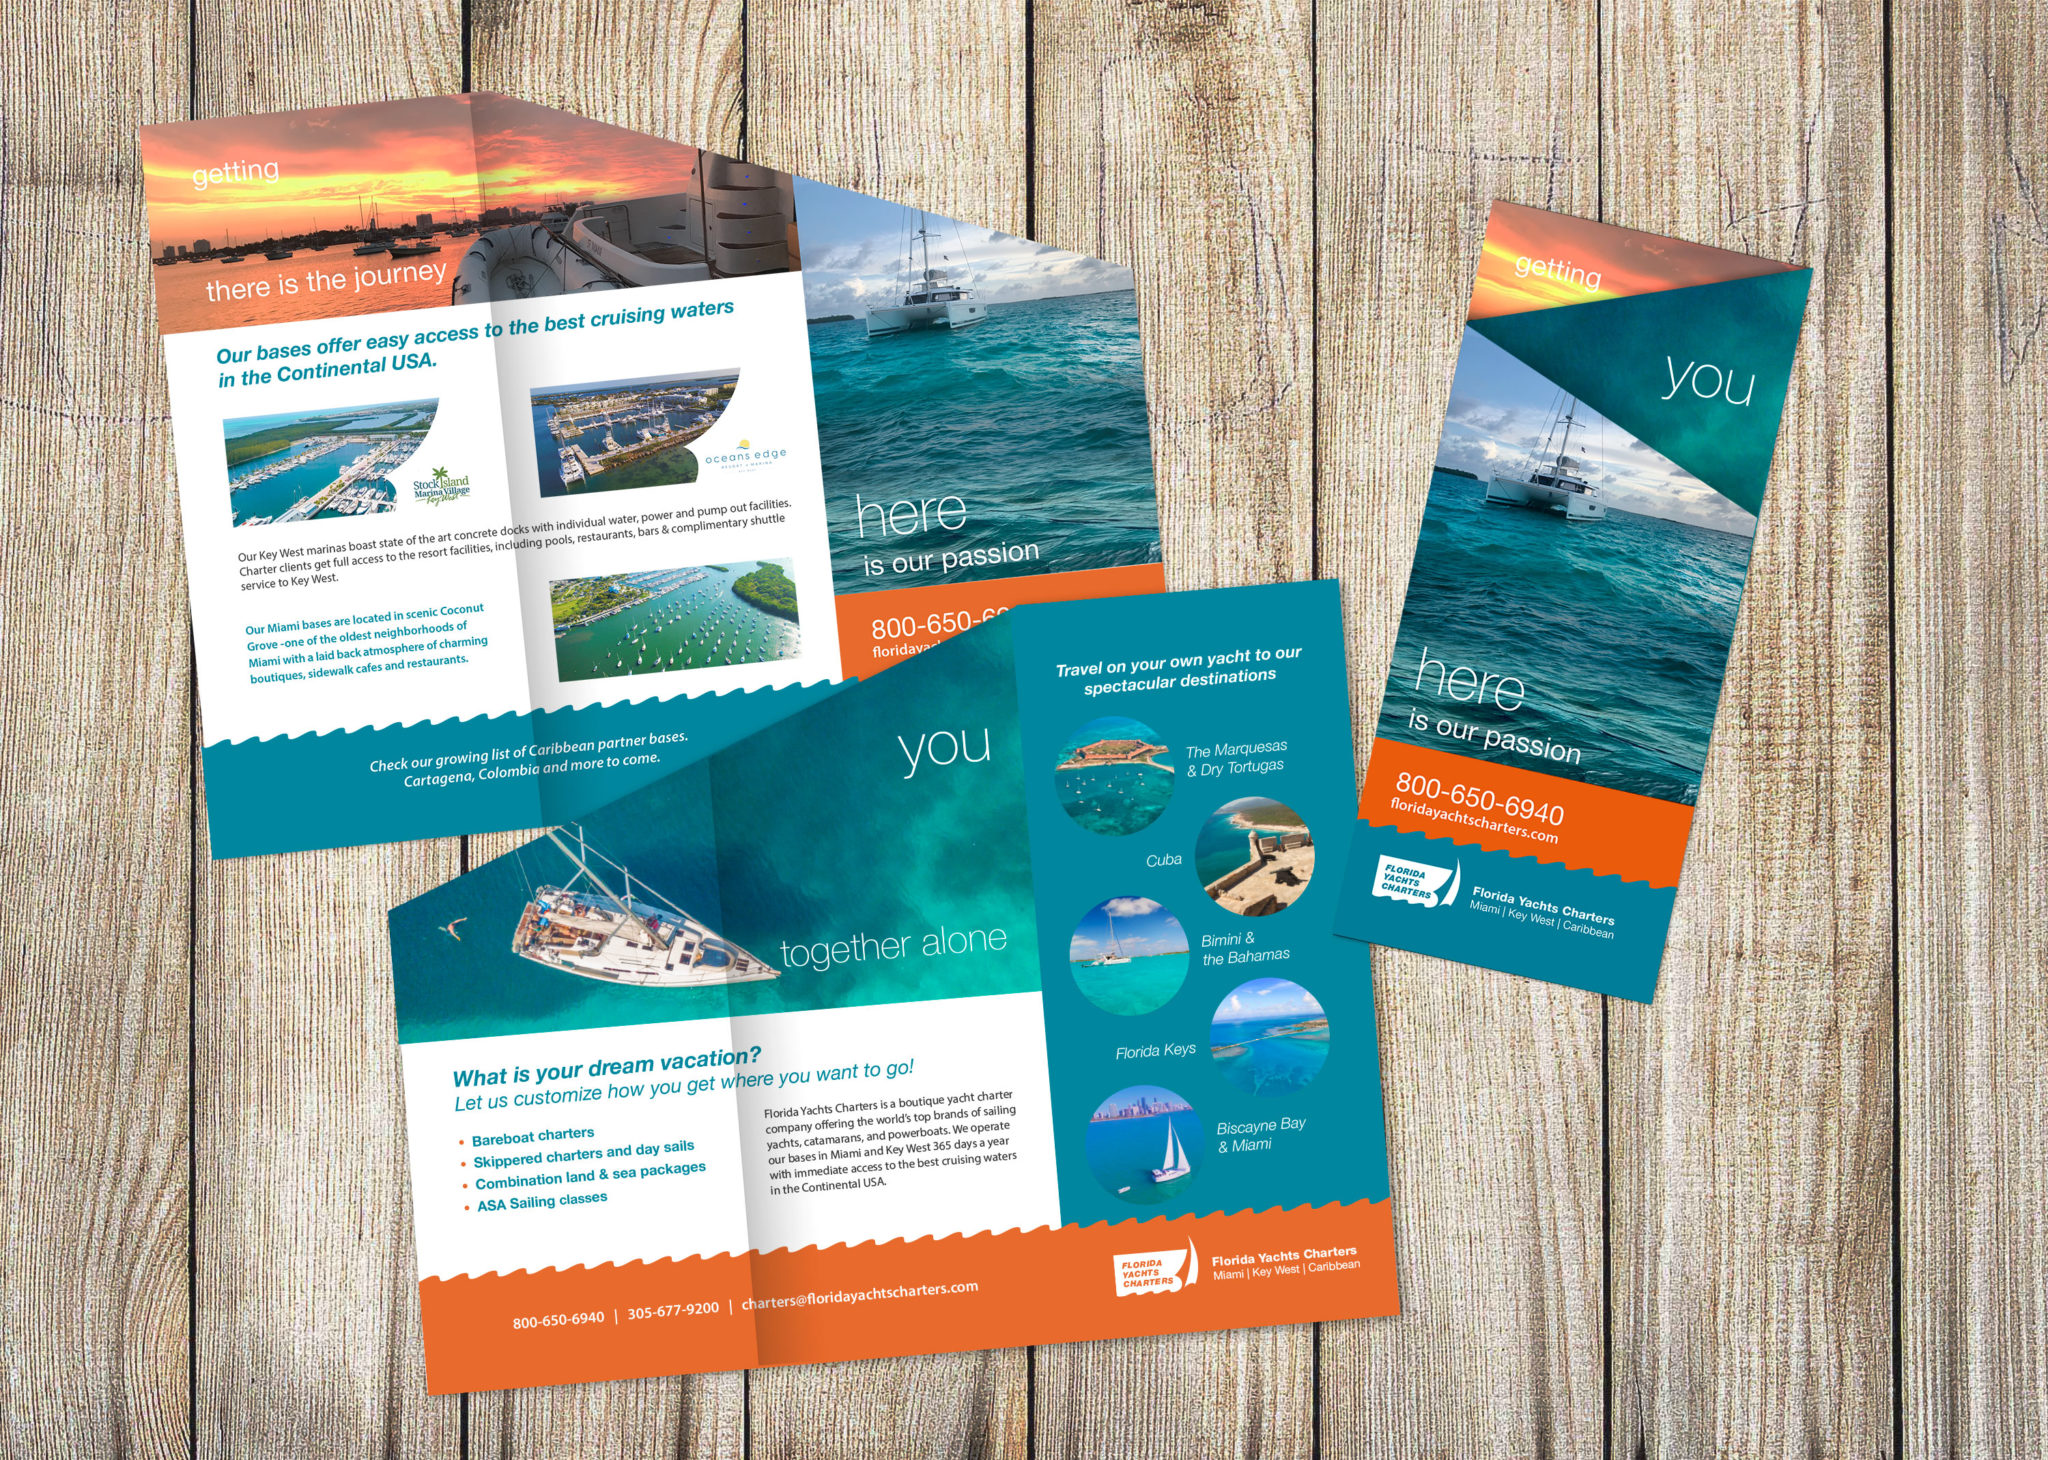 Florida Yacht Charters flyer